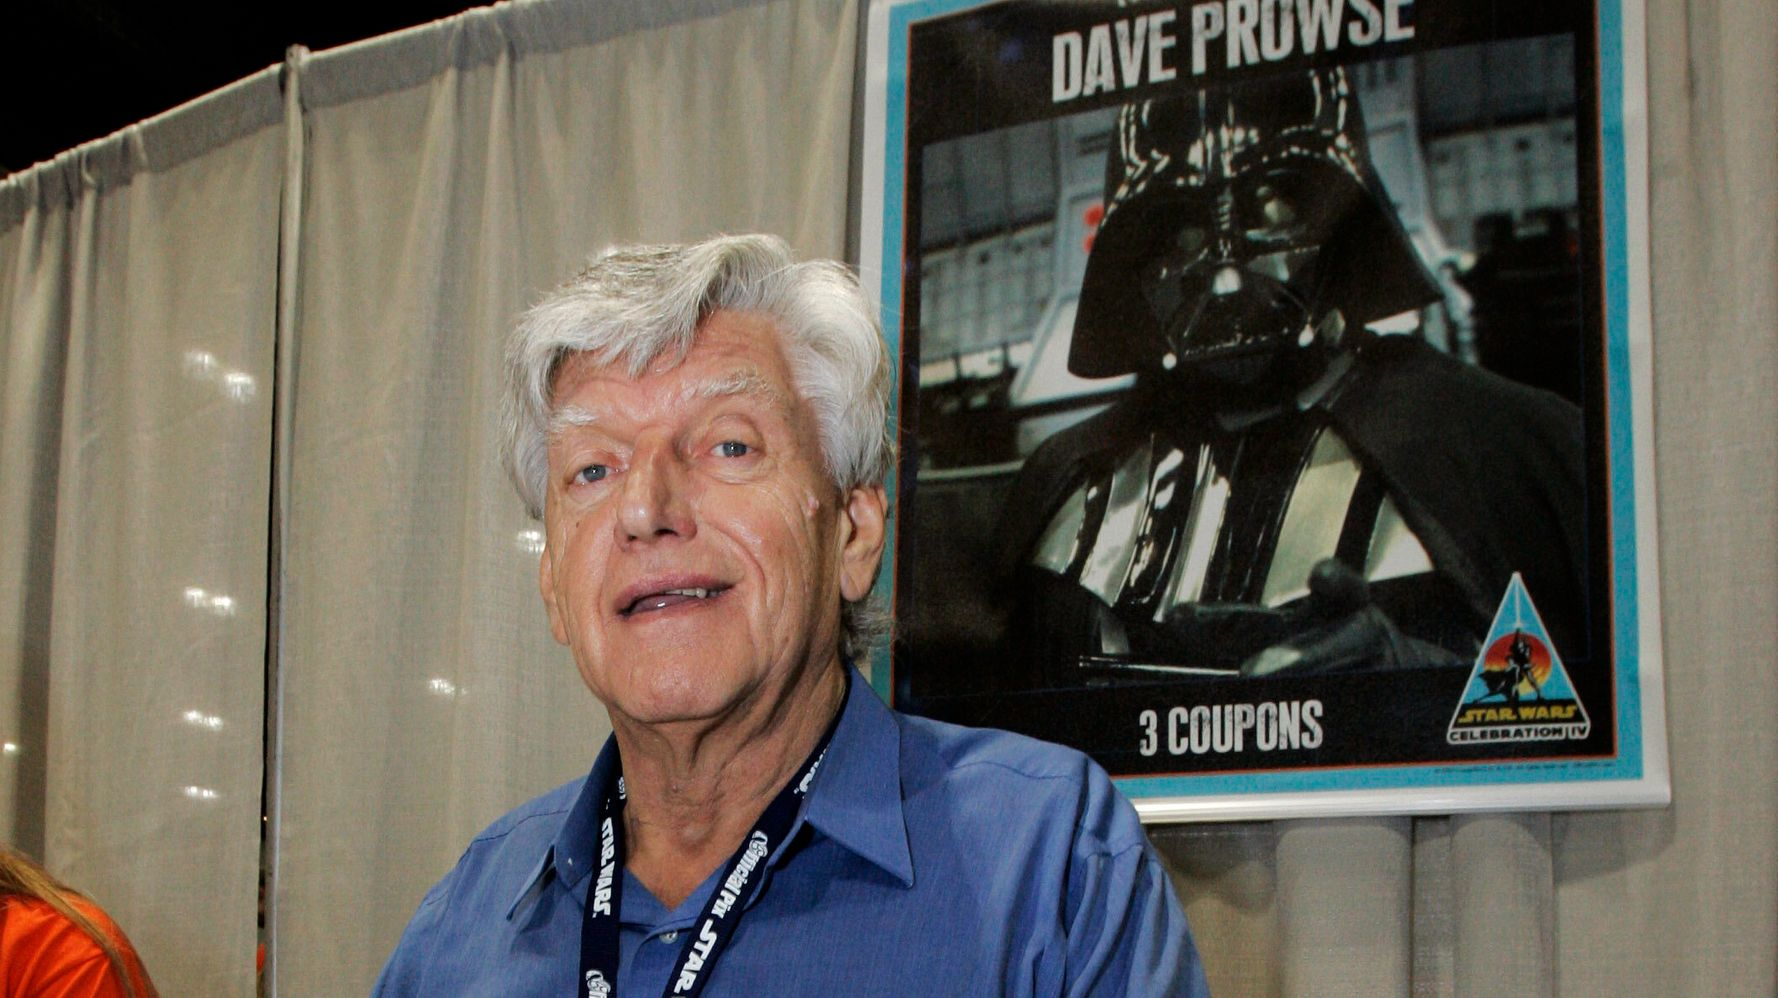 Actor David Prowse, Who Played Darth Vader In Original 'Star Wars' Trilogy, Dead At 85